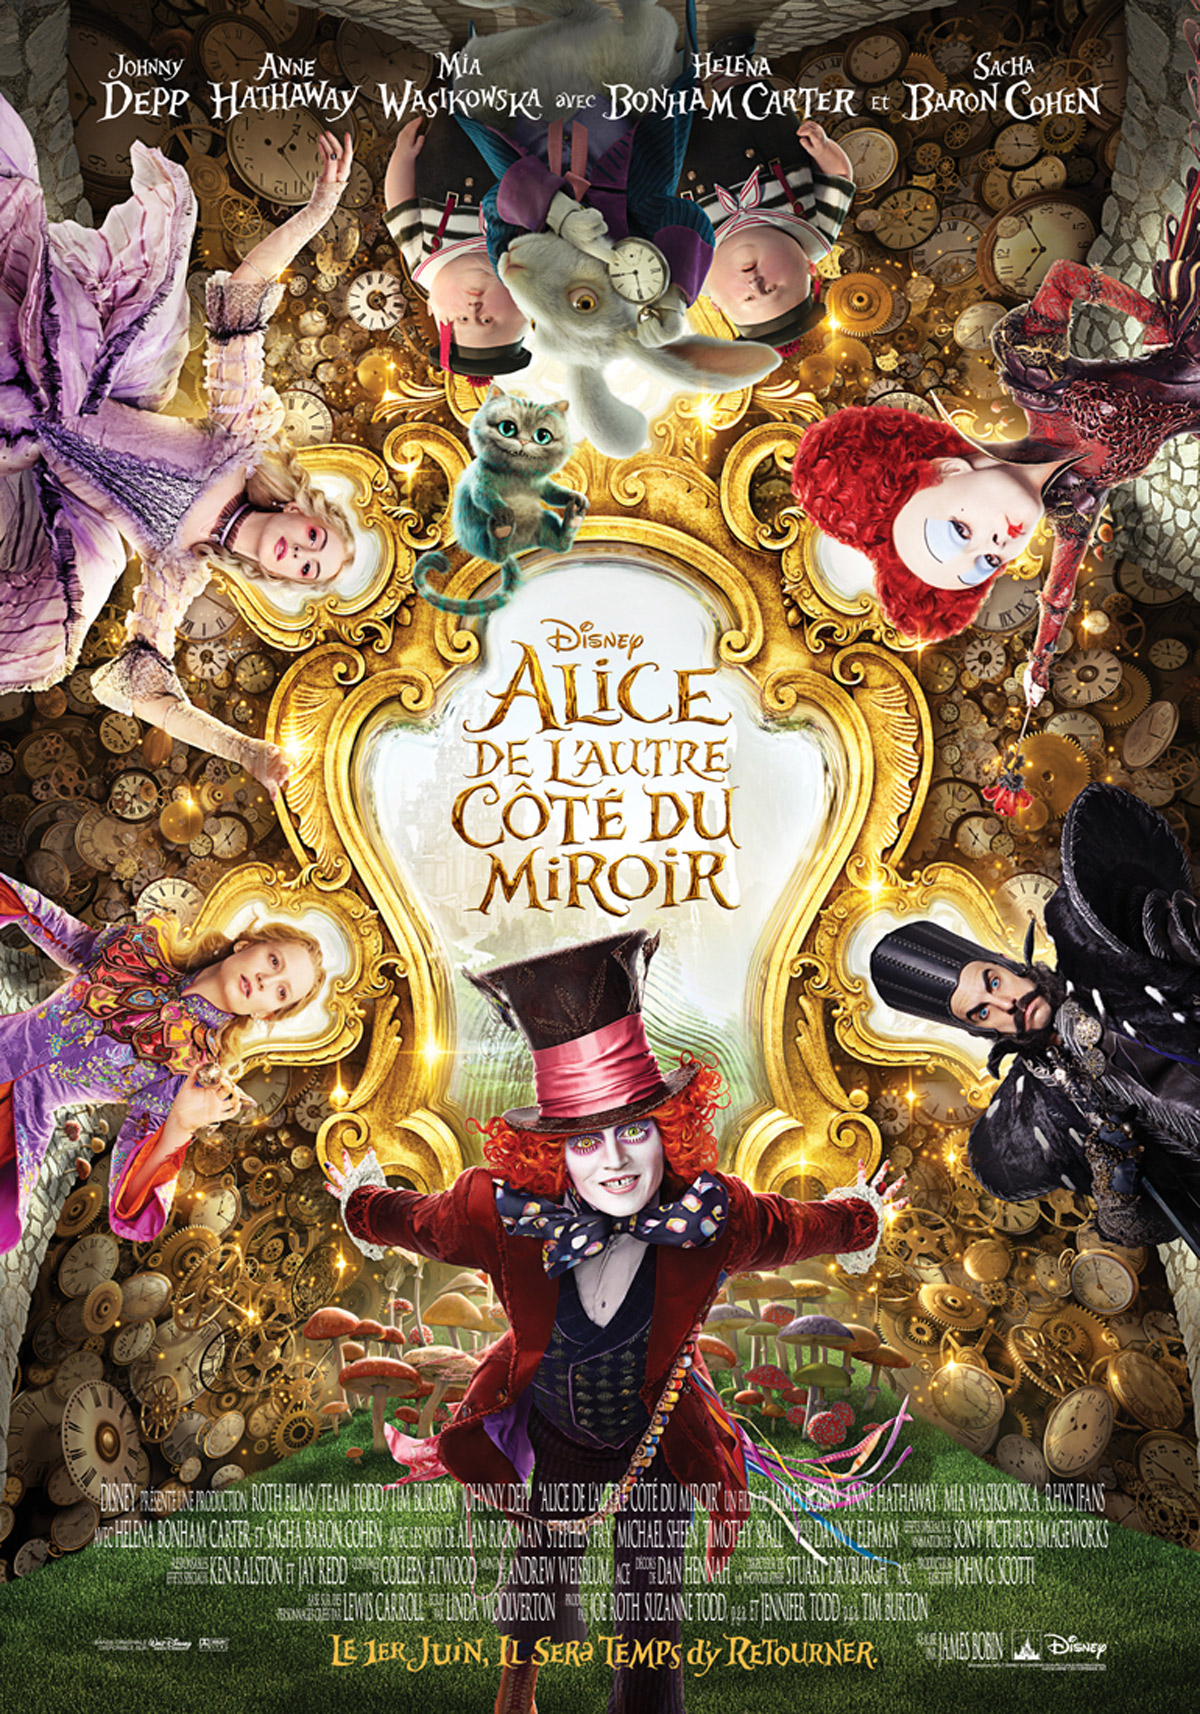 disney affiche poster alice de l'autre côté du miroir through looking glass